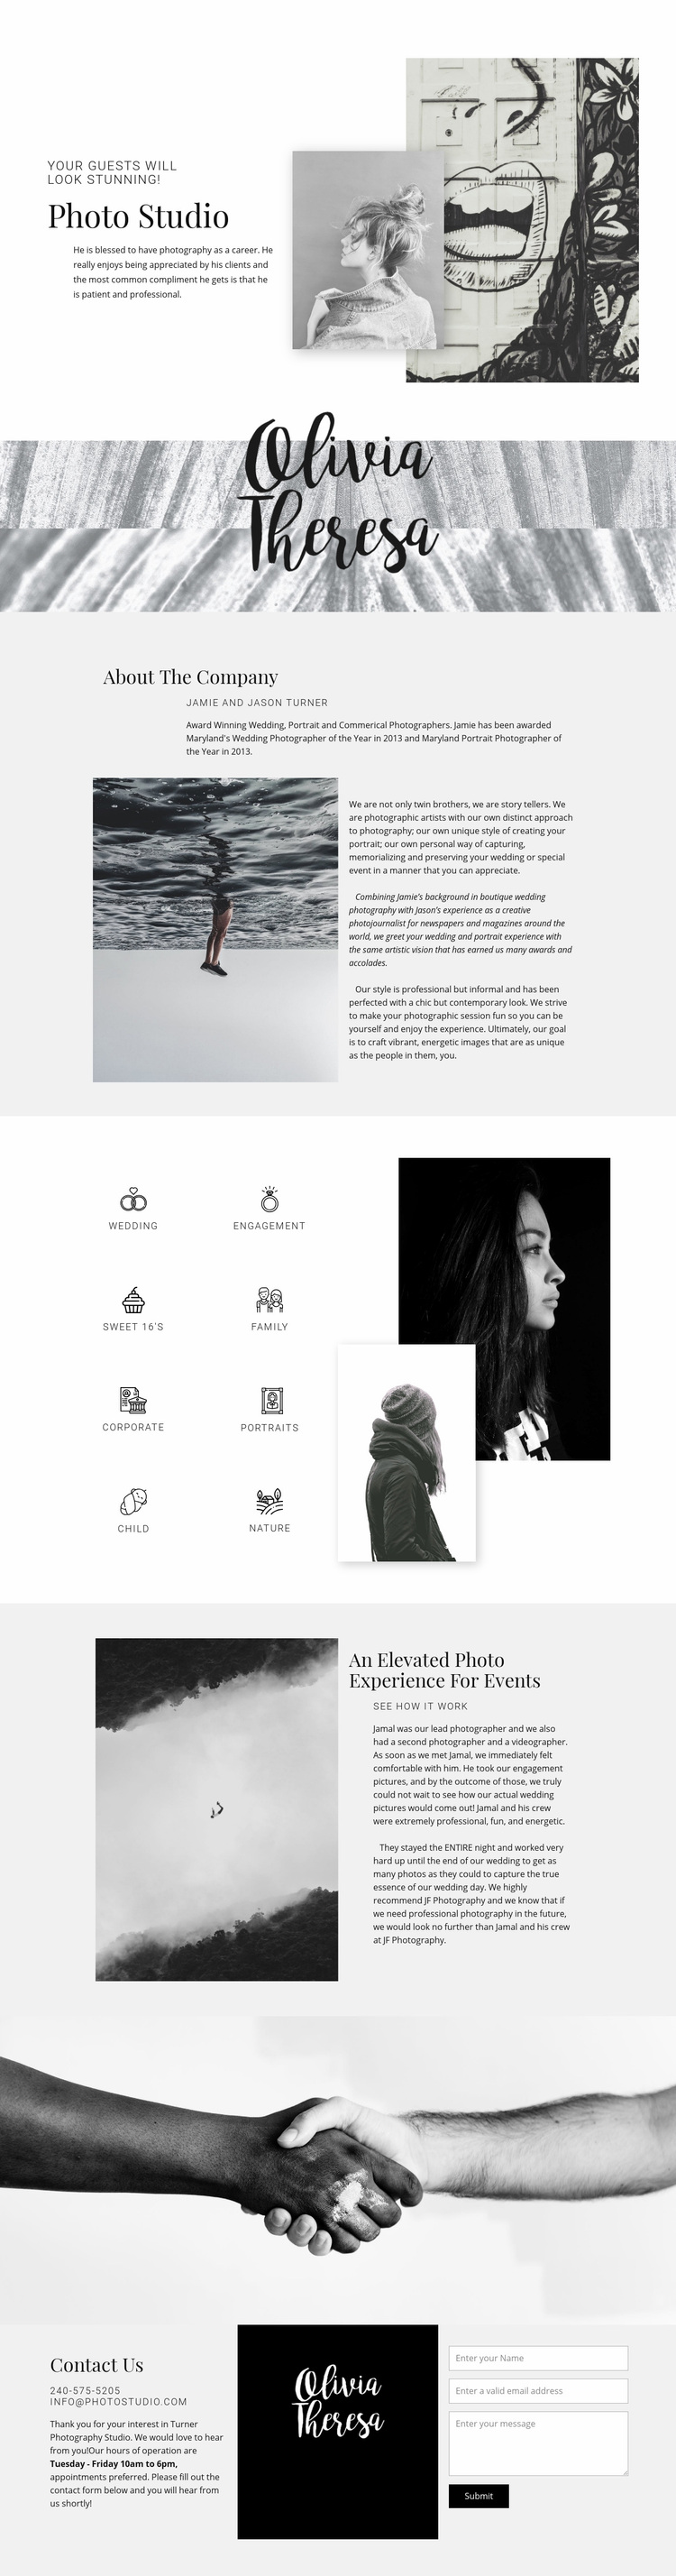 Ideas brought to live art Web Page Designer